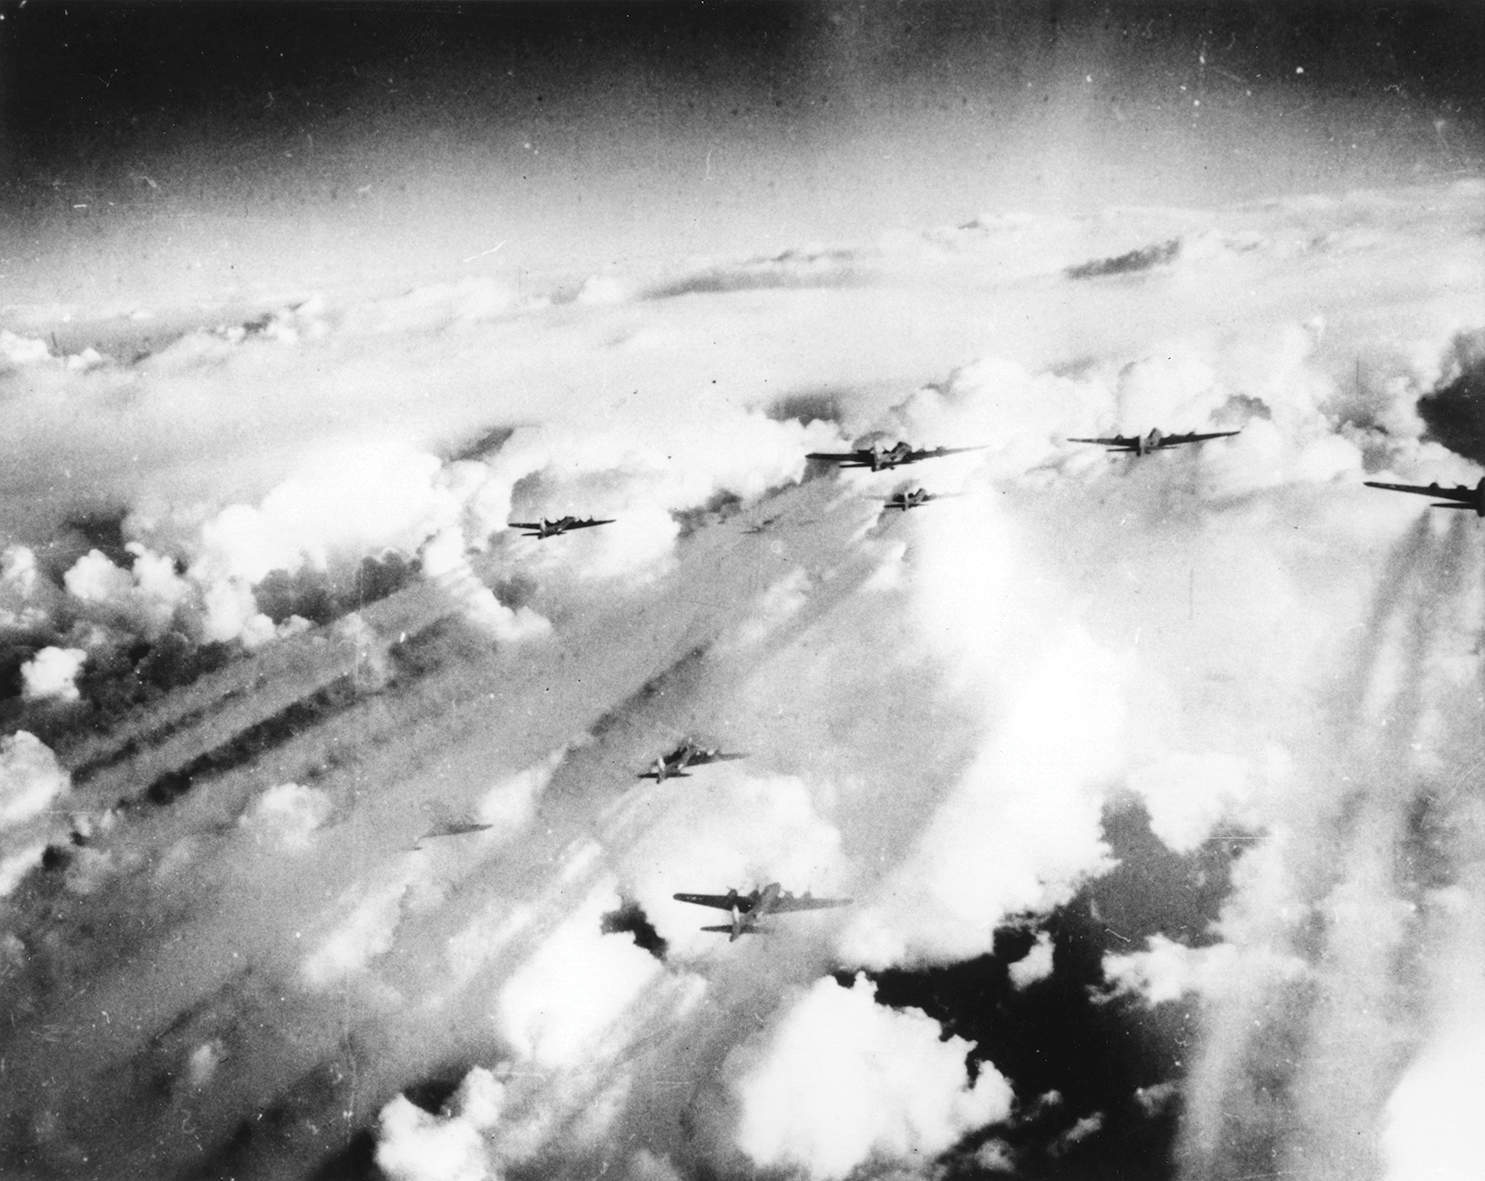 High explosive, damp squibs: the history of bombing raids